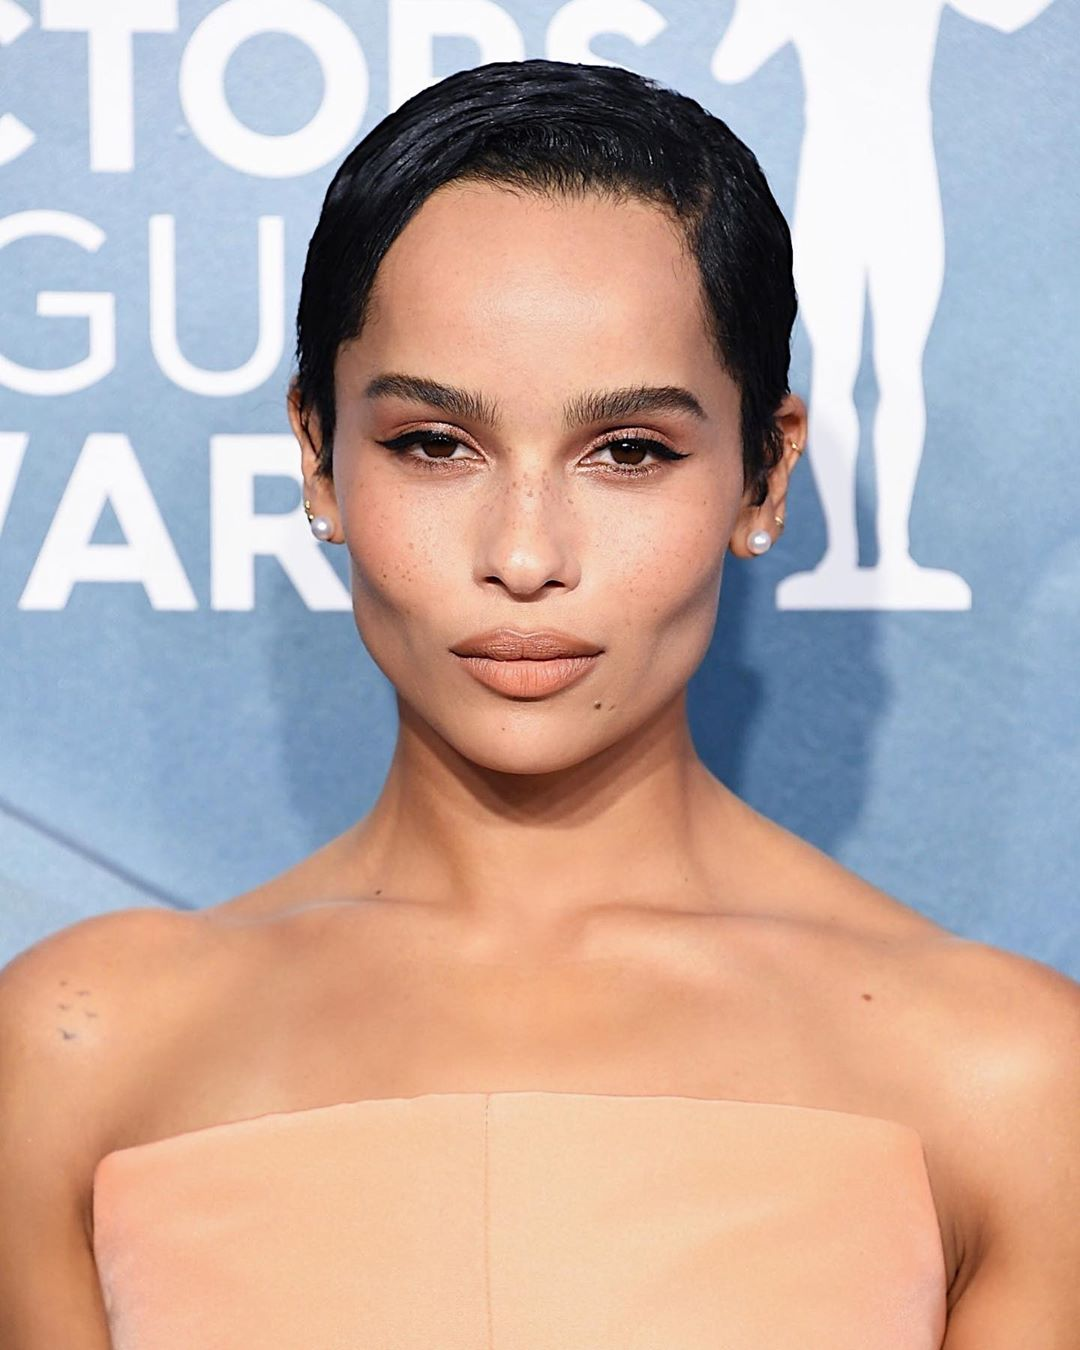 SAG Awards 2020 beauty zoe kravitz